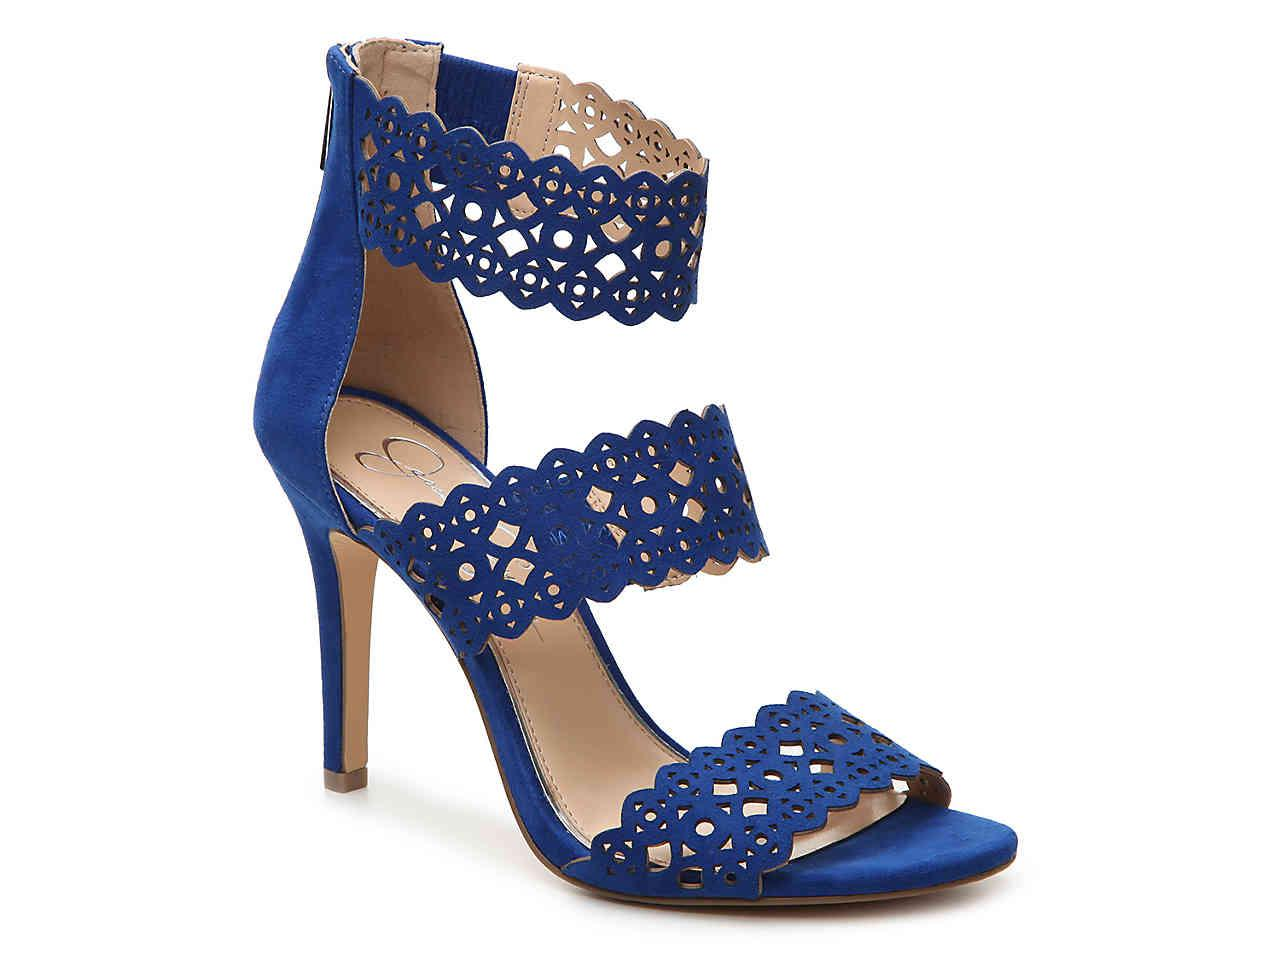 021be5d57c Lyst - Jessica Simpson Jaymay Sandal in Blue